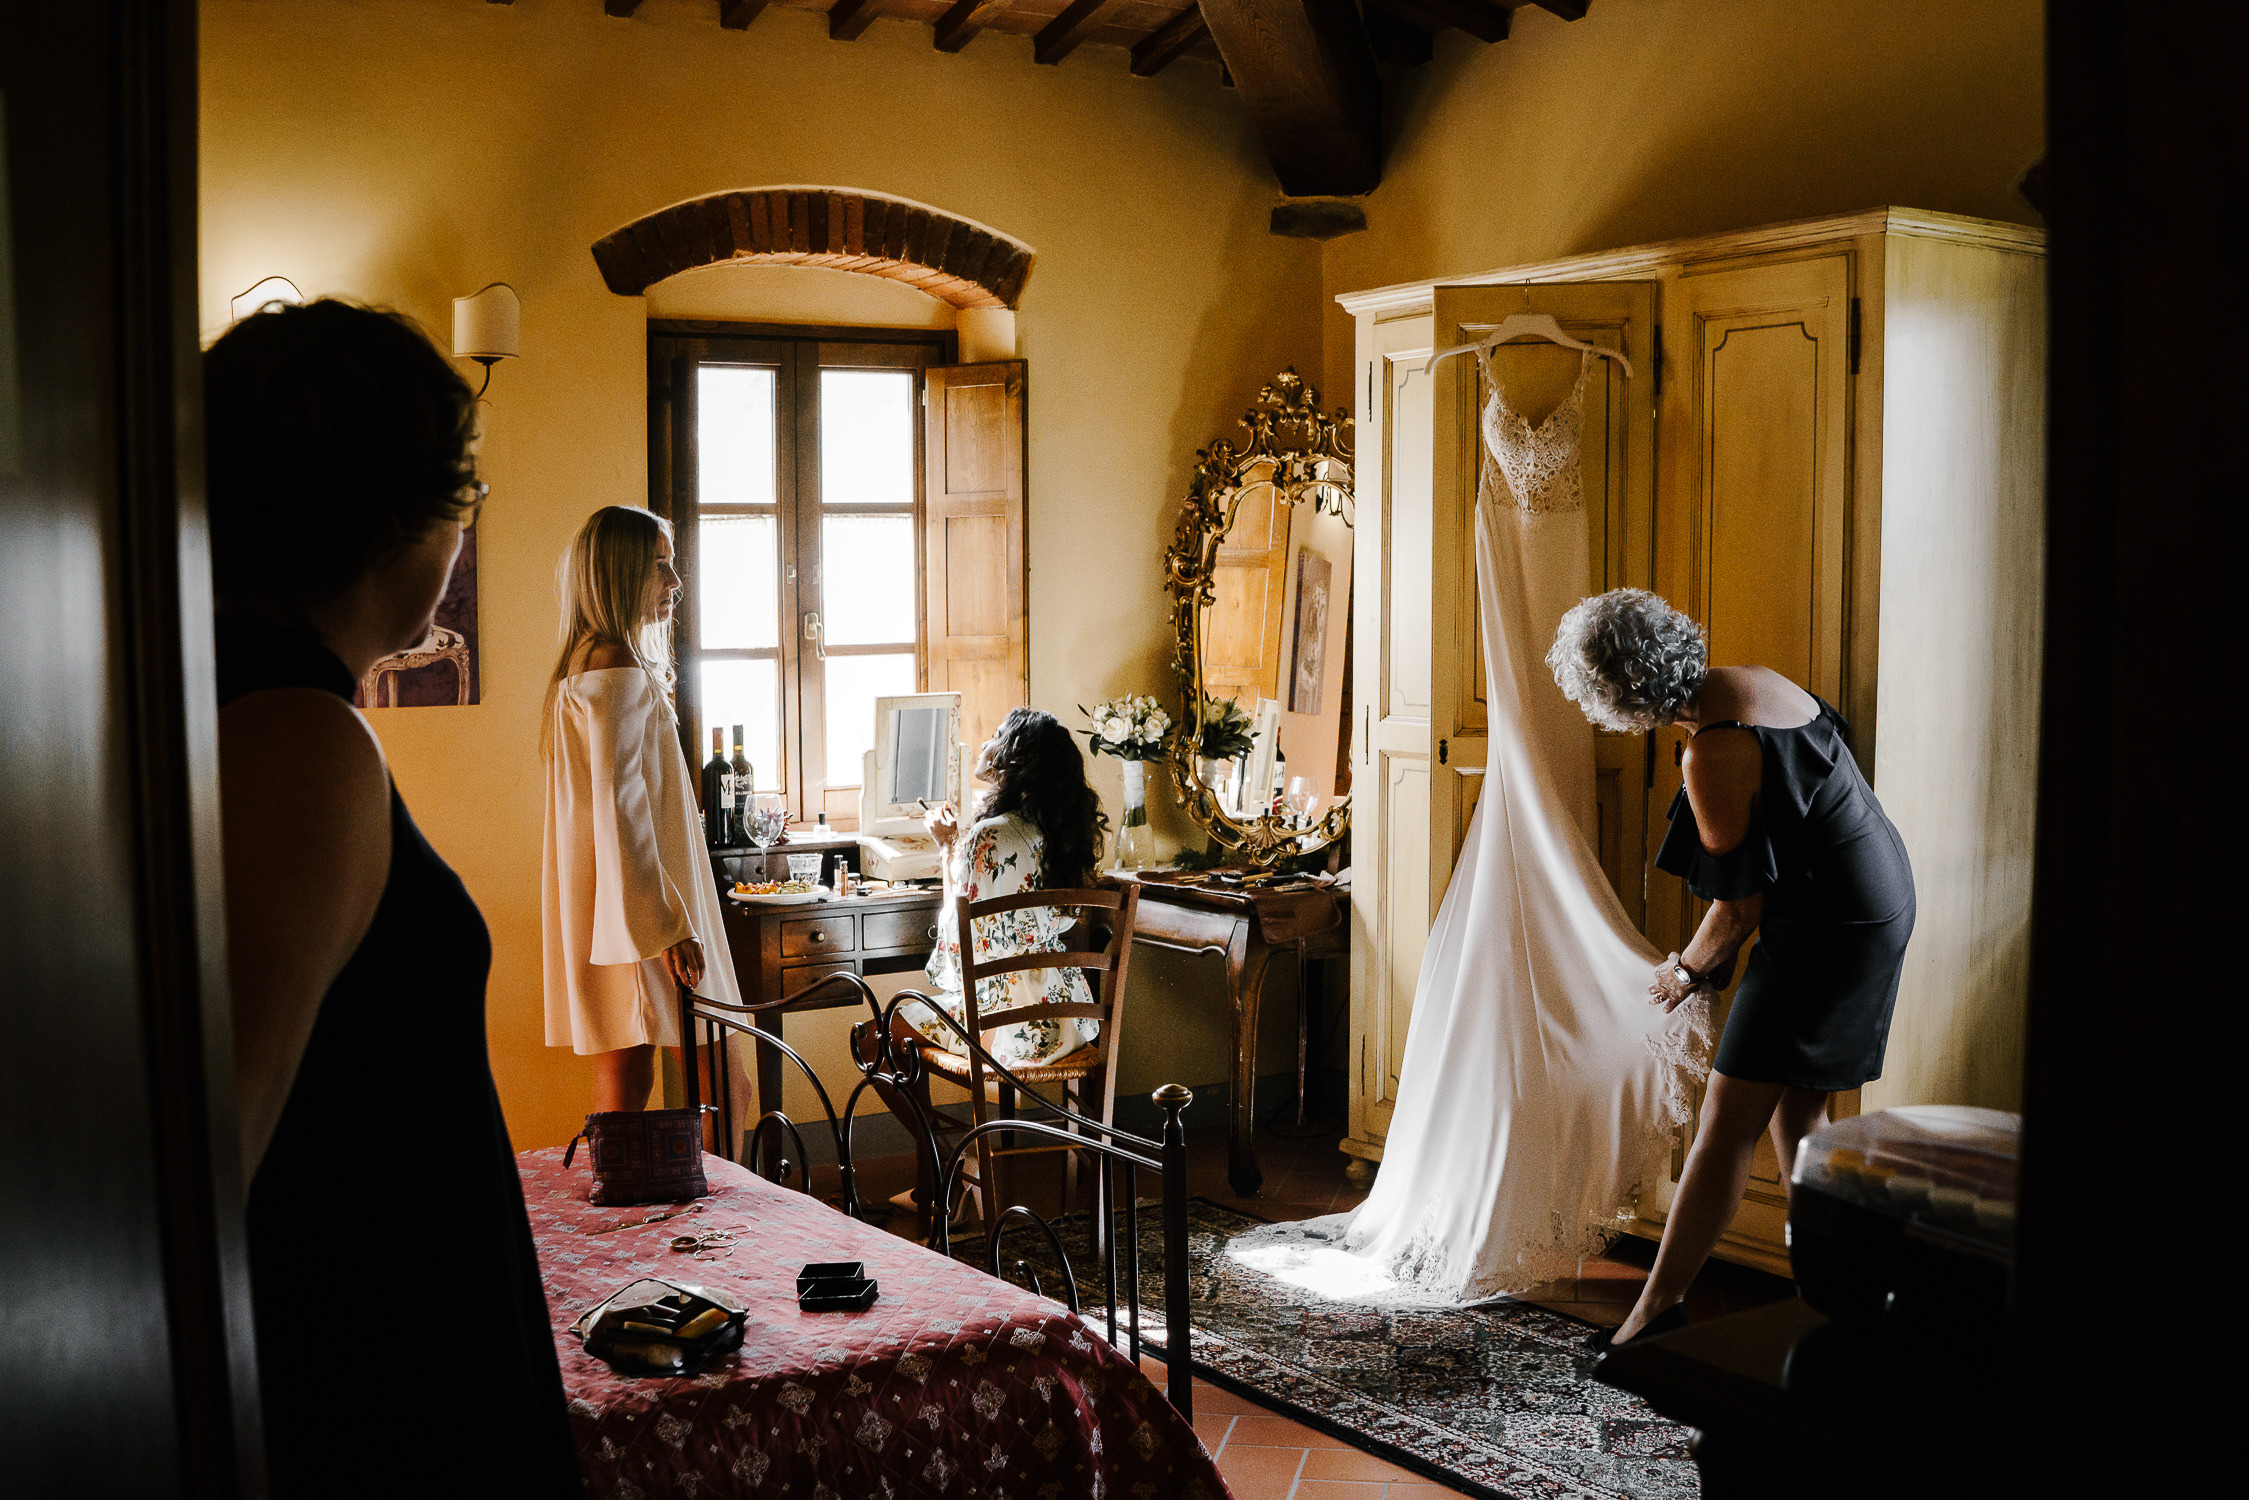 best amterdam wedding photographers mark hadden in tuscany, italy, bridal prep